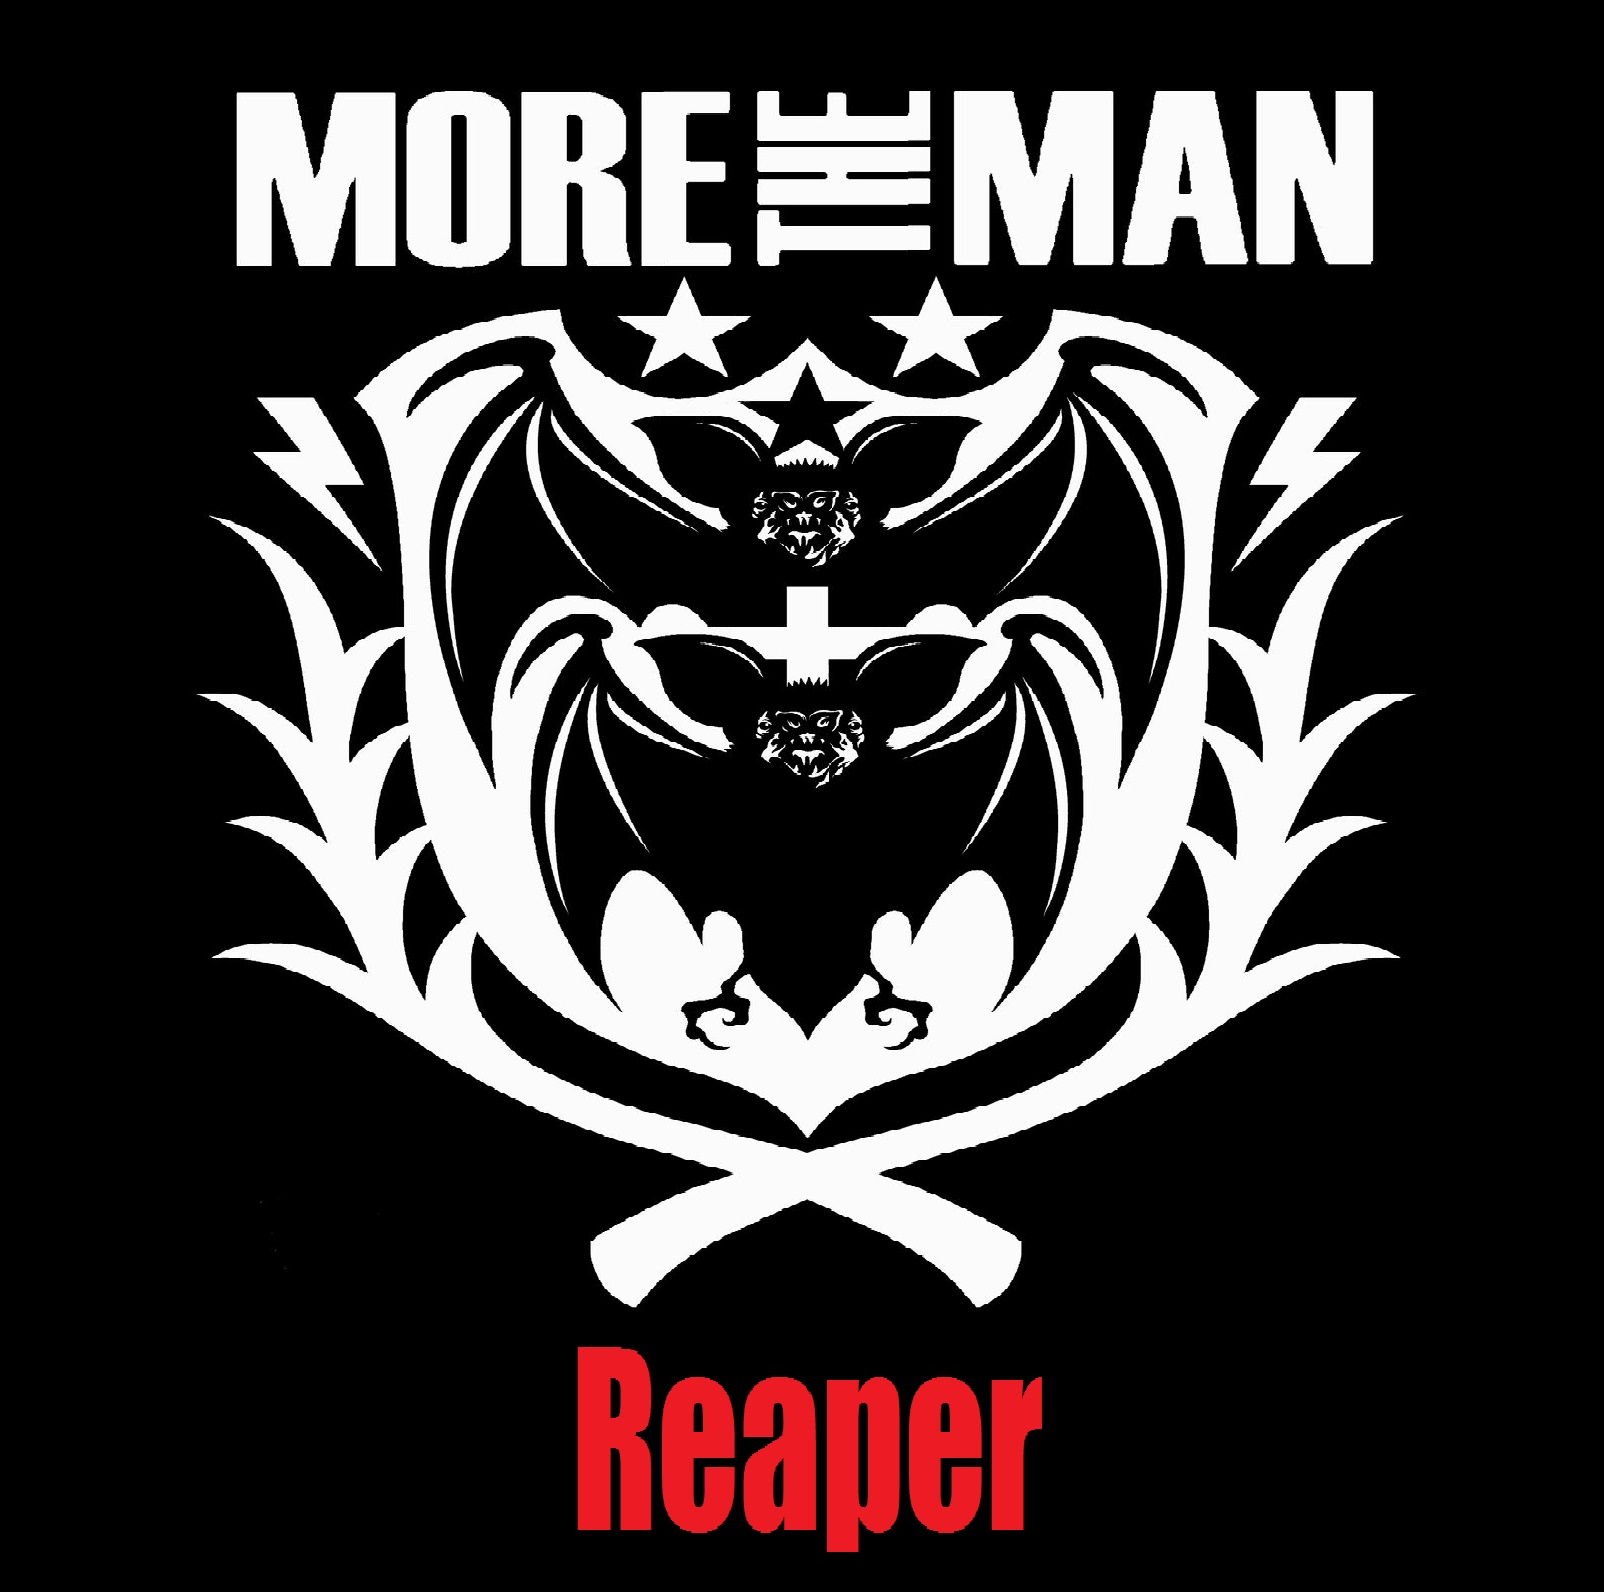 MORE THE MAN『Reaper』